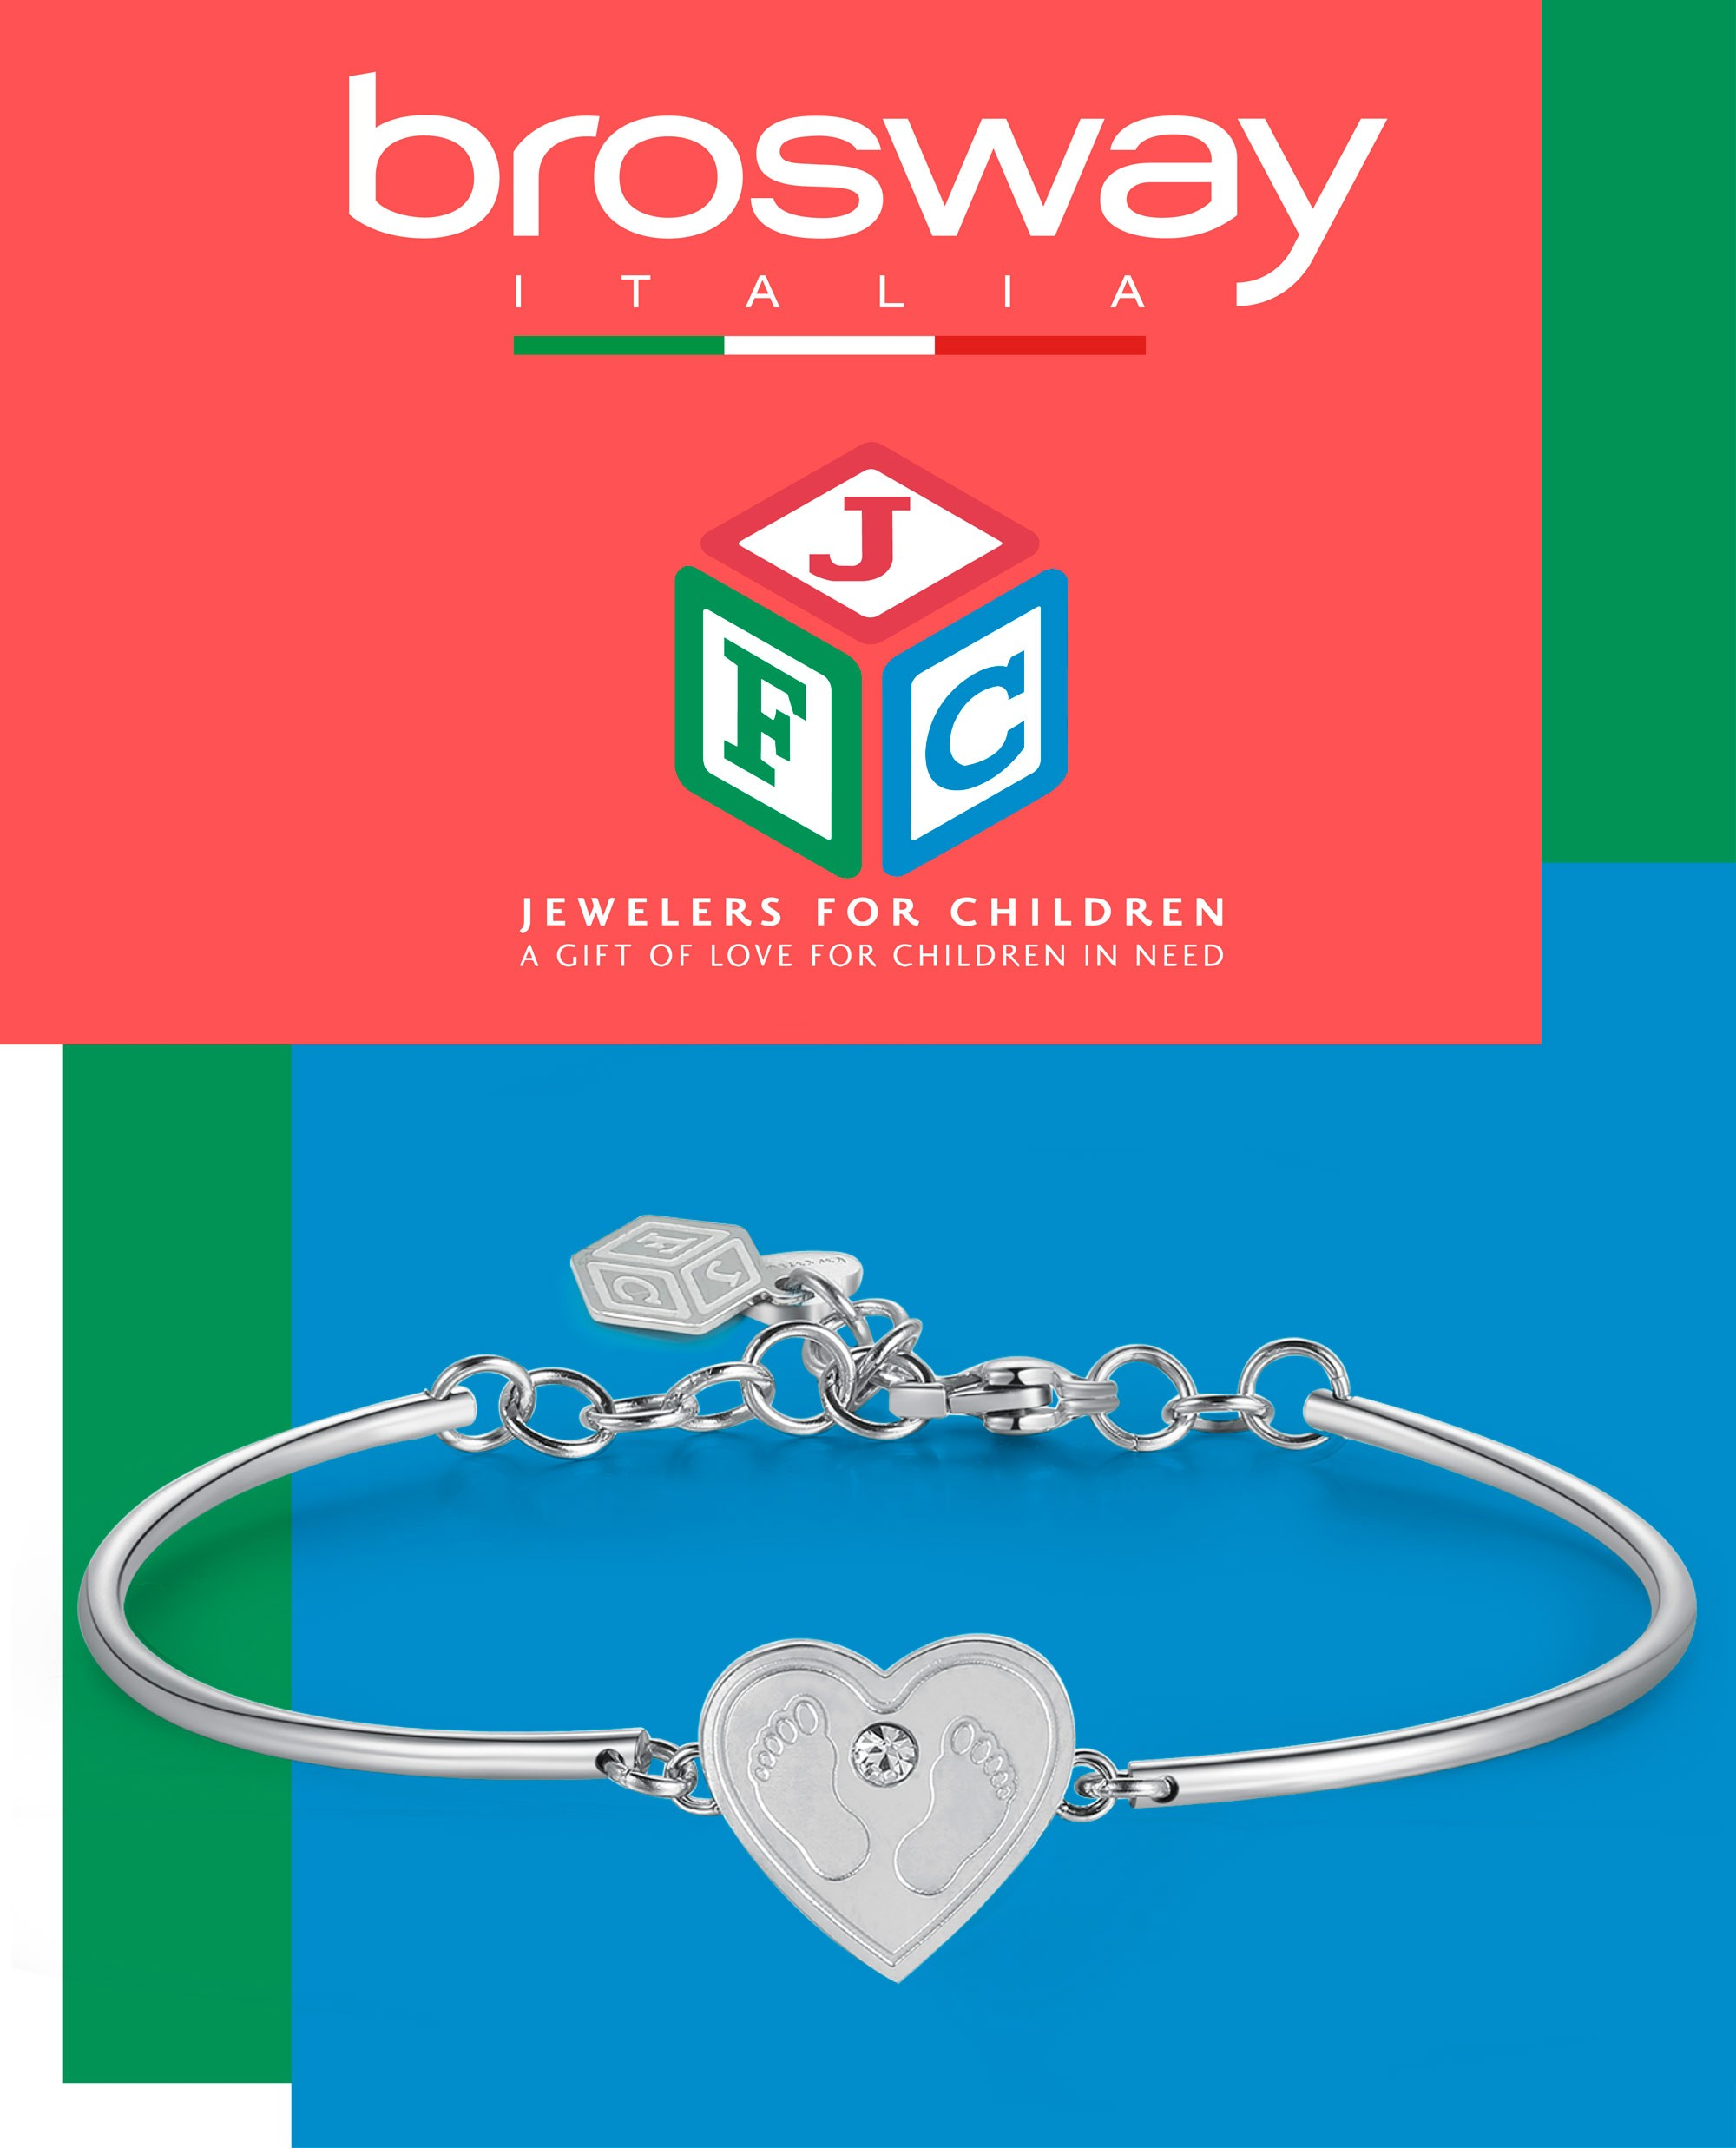 bracelet charity jewelers for children